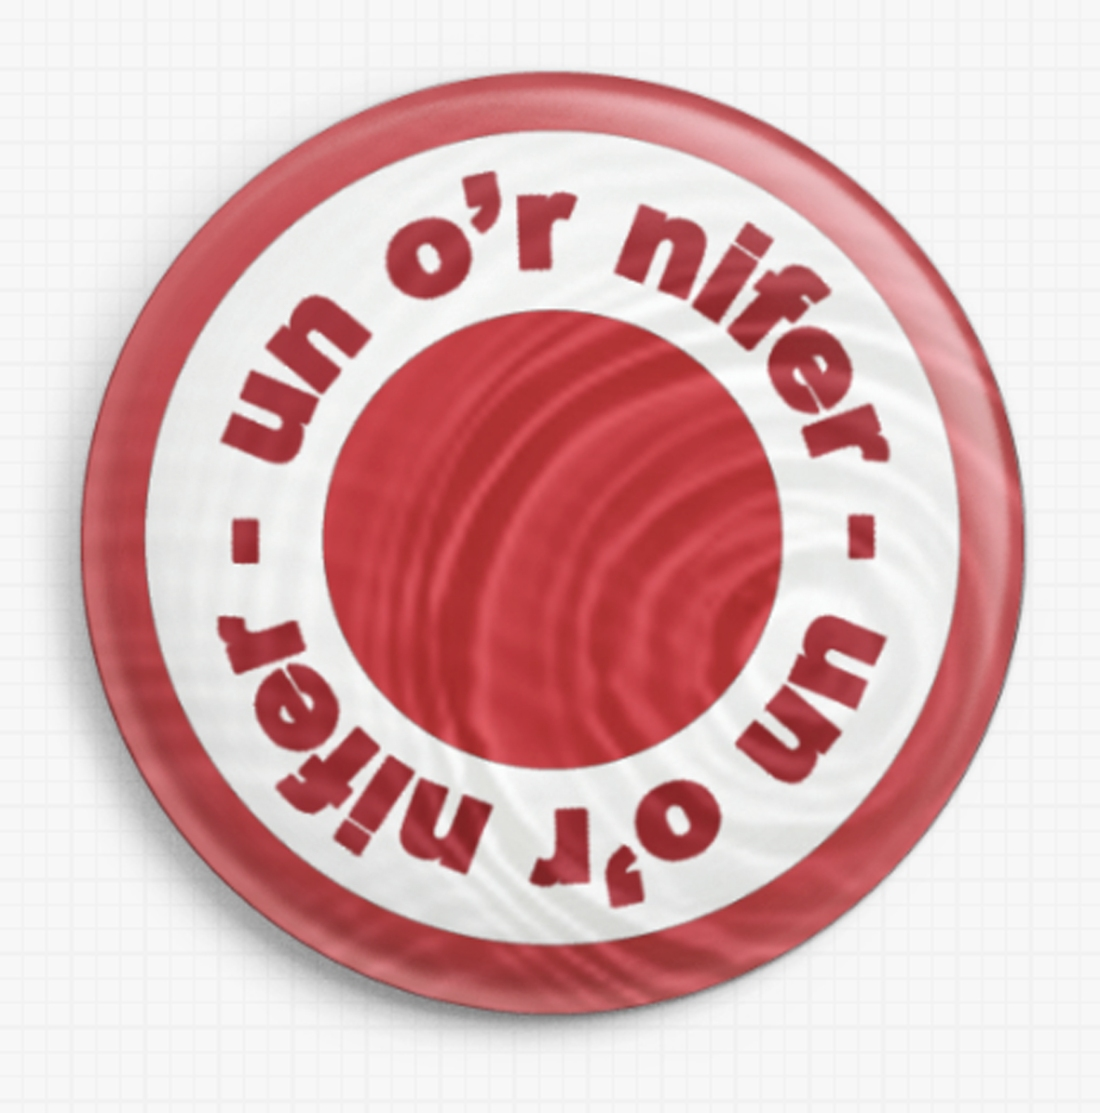 Un or nifer badge Sean Puleston